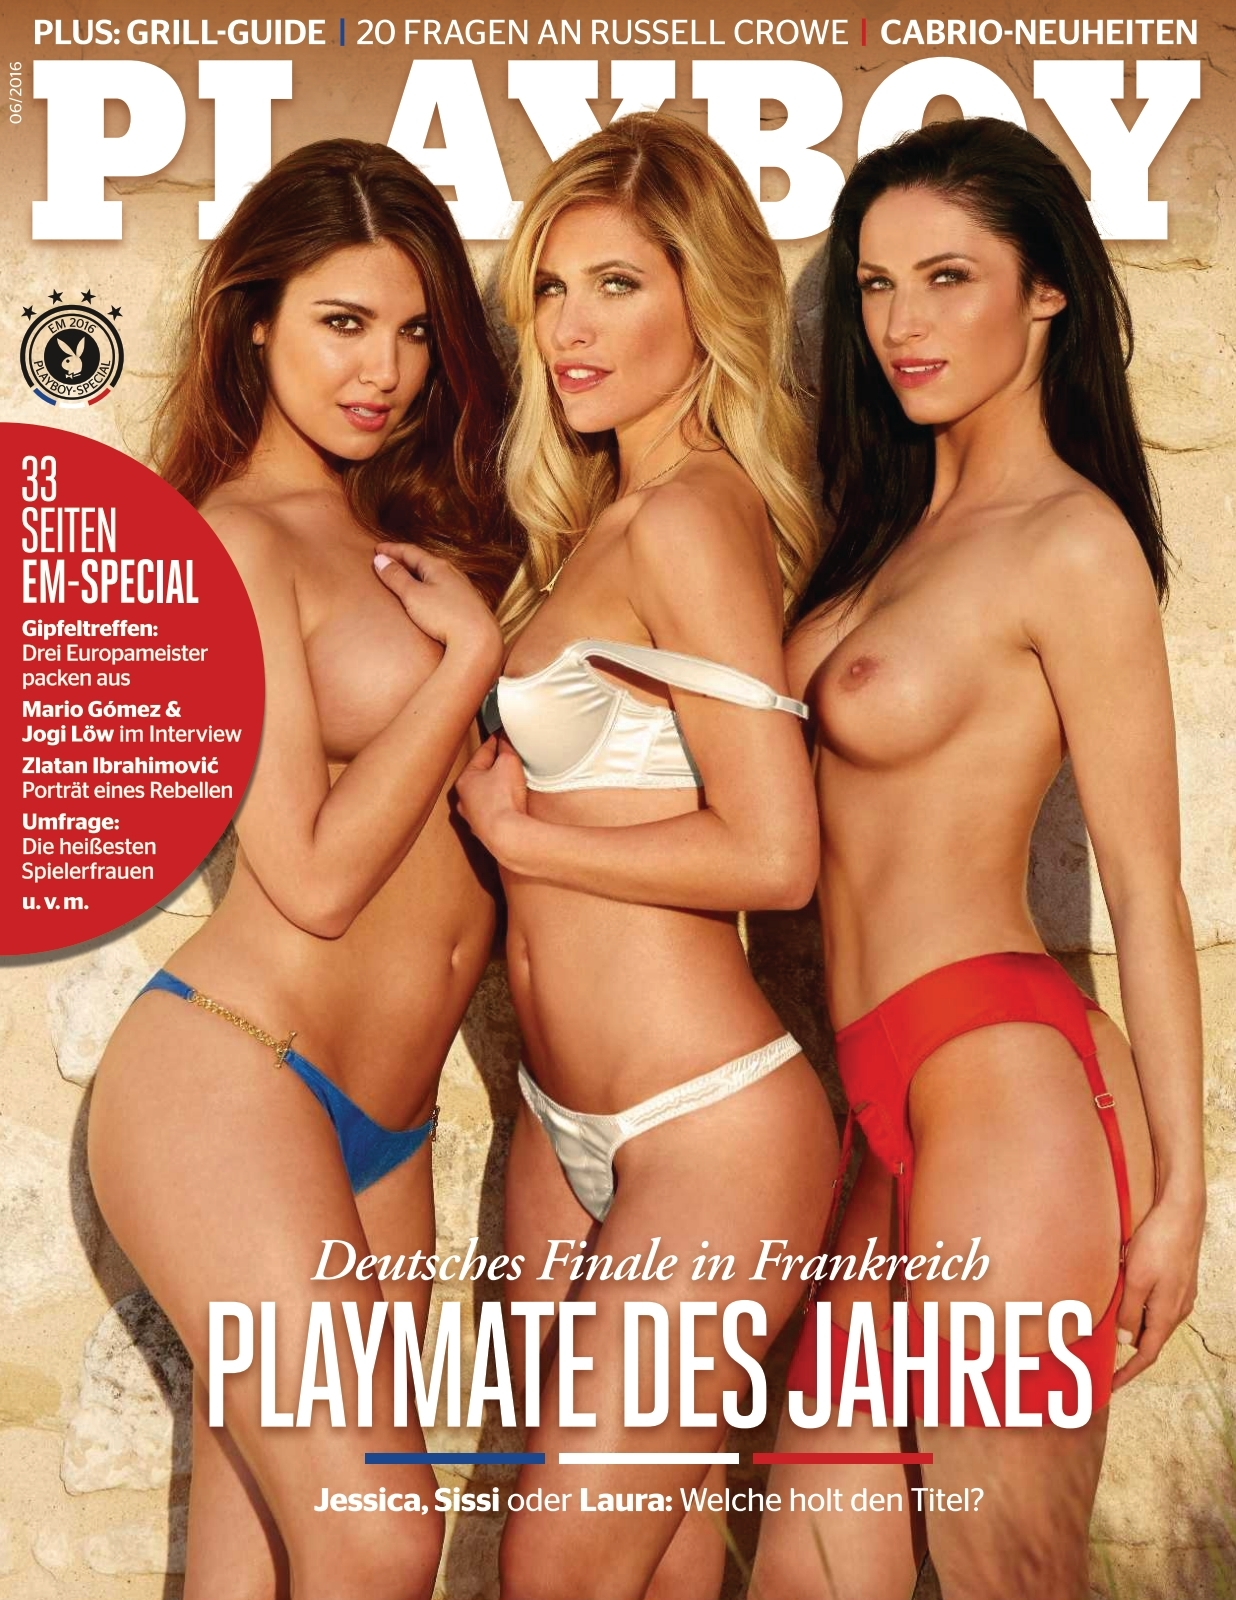 Michelle Pfifferench Audition Porn playboy - playmate des jahres